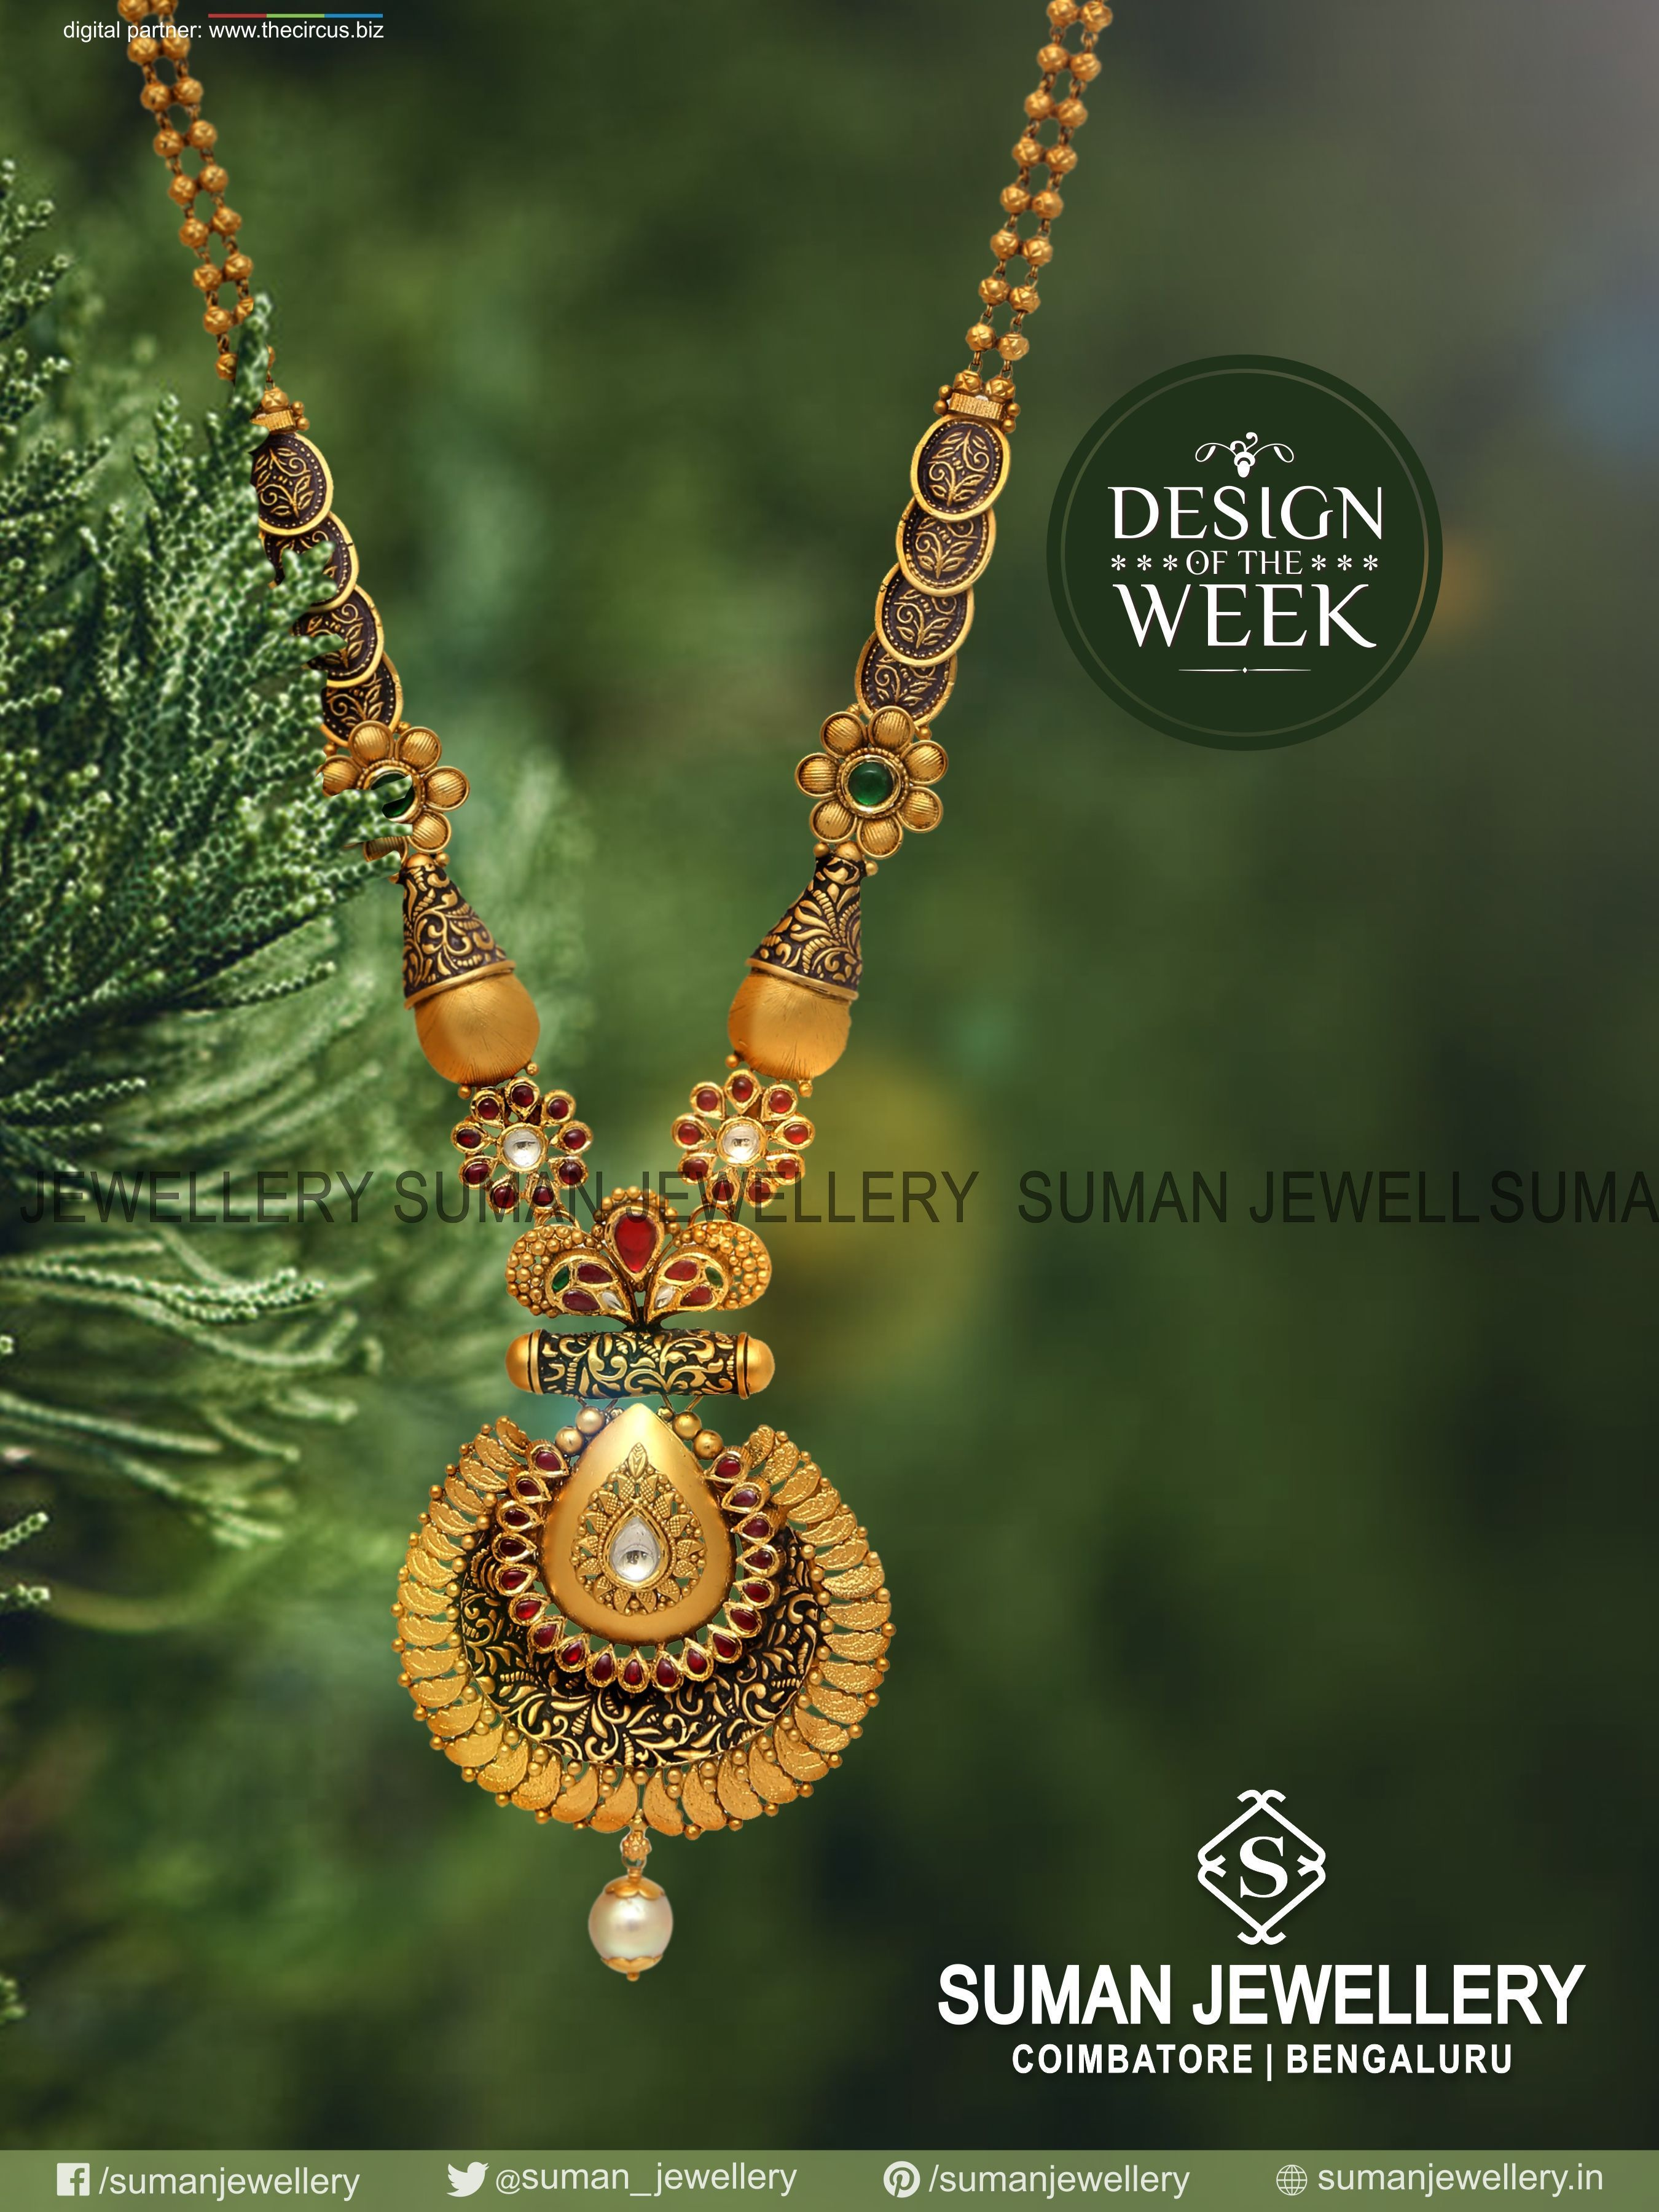 Design of the week beyond perfection crafted specially for the